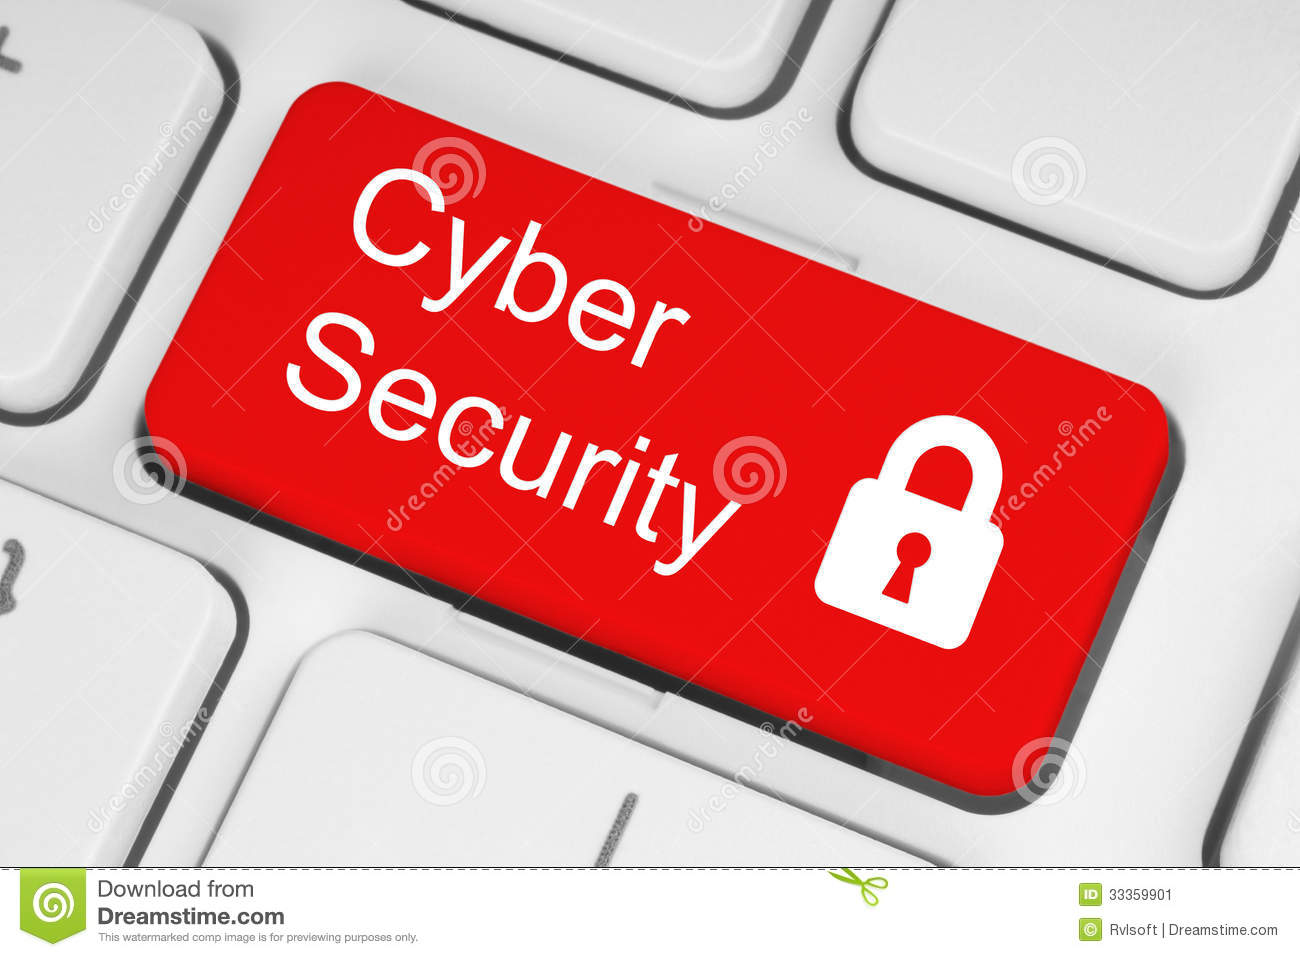 Cyber security concept on red button